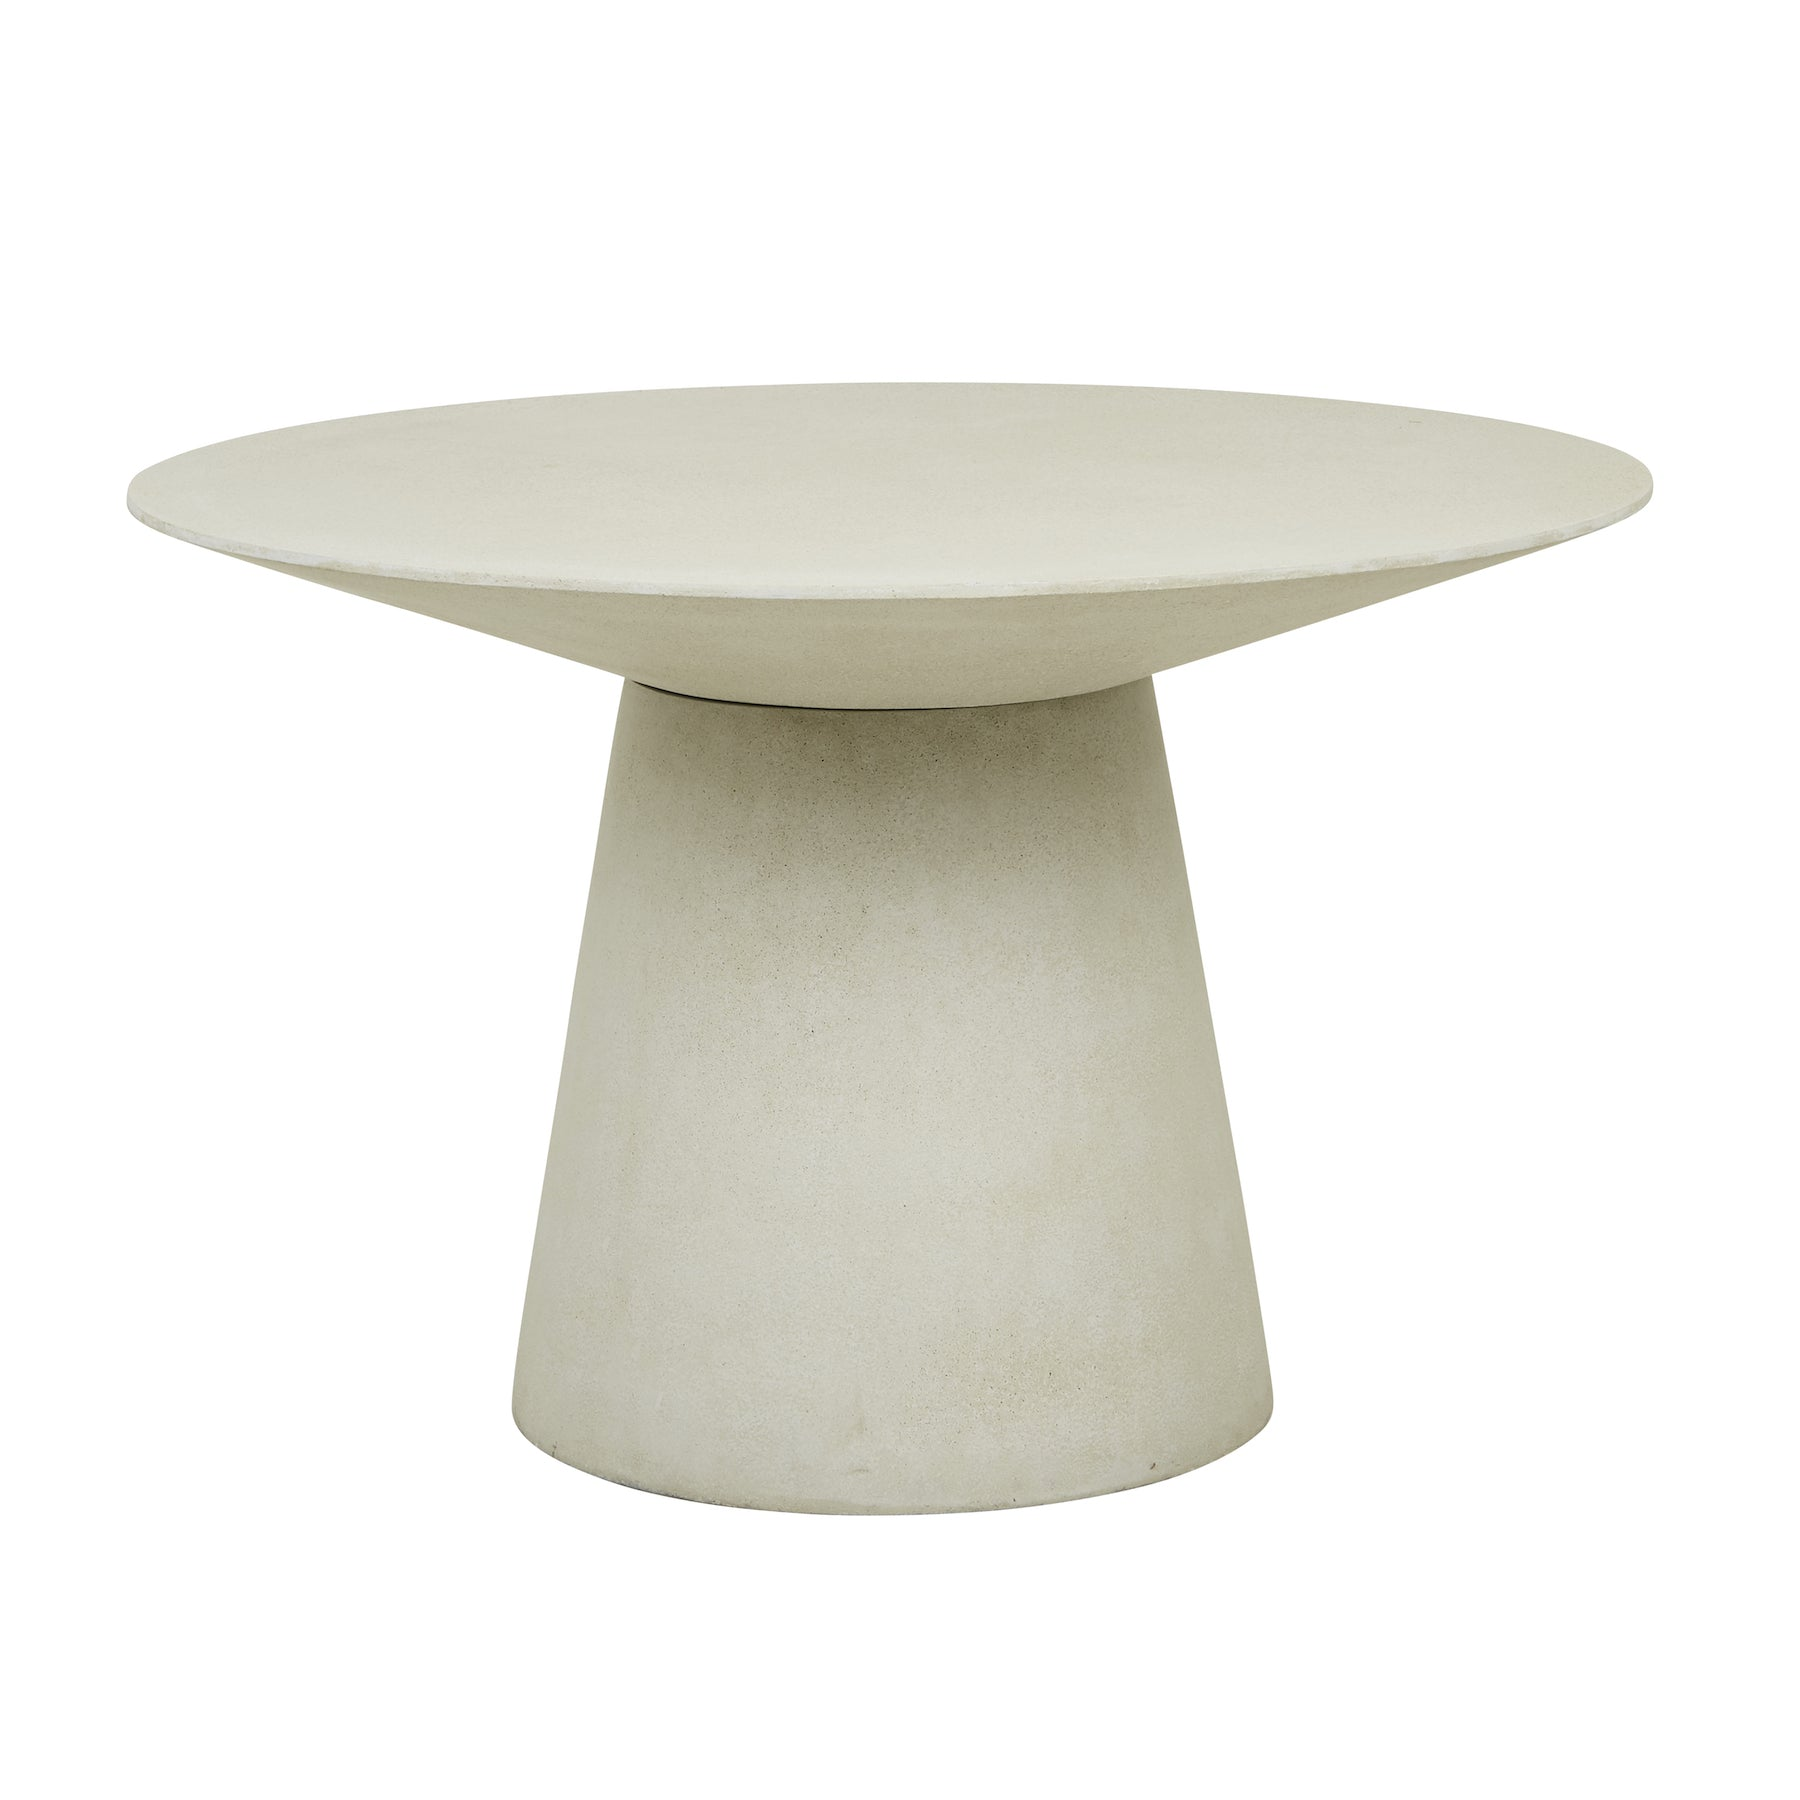 Livorno Round Concrete Patio Dining Table | Grey